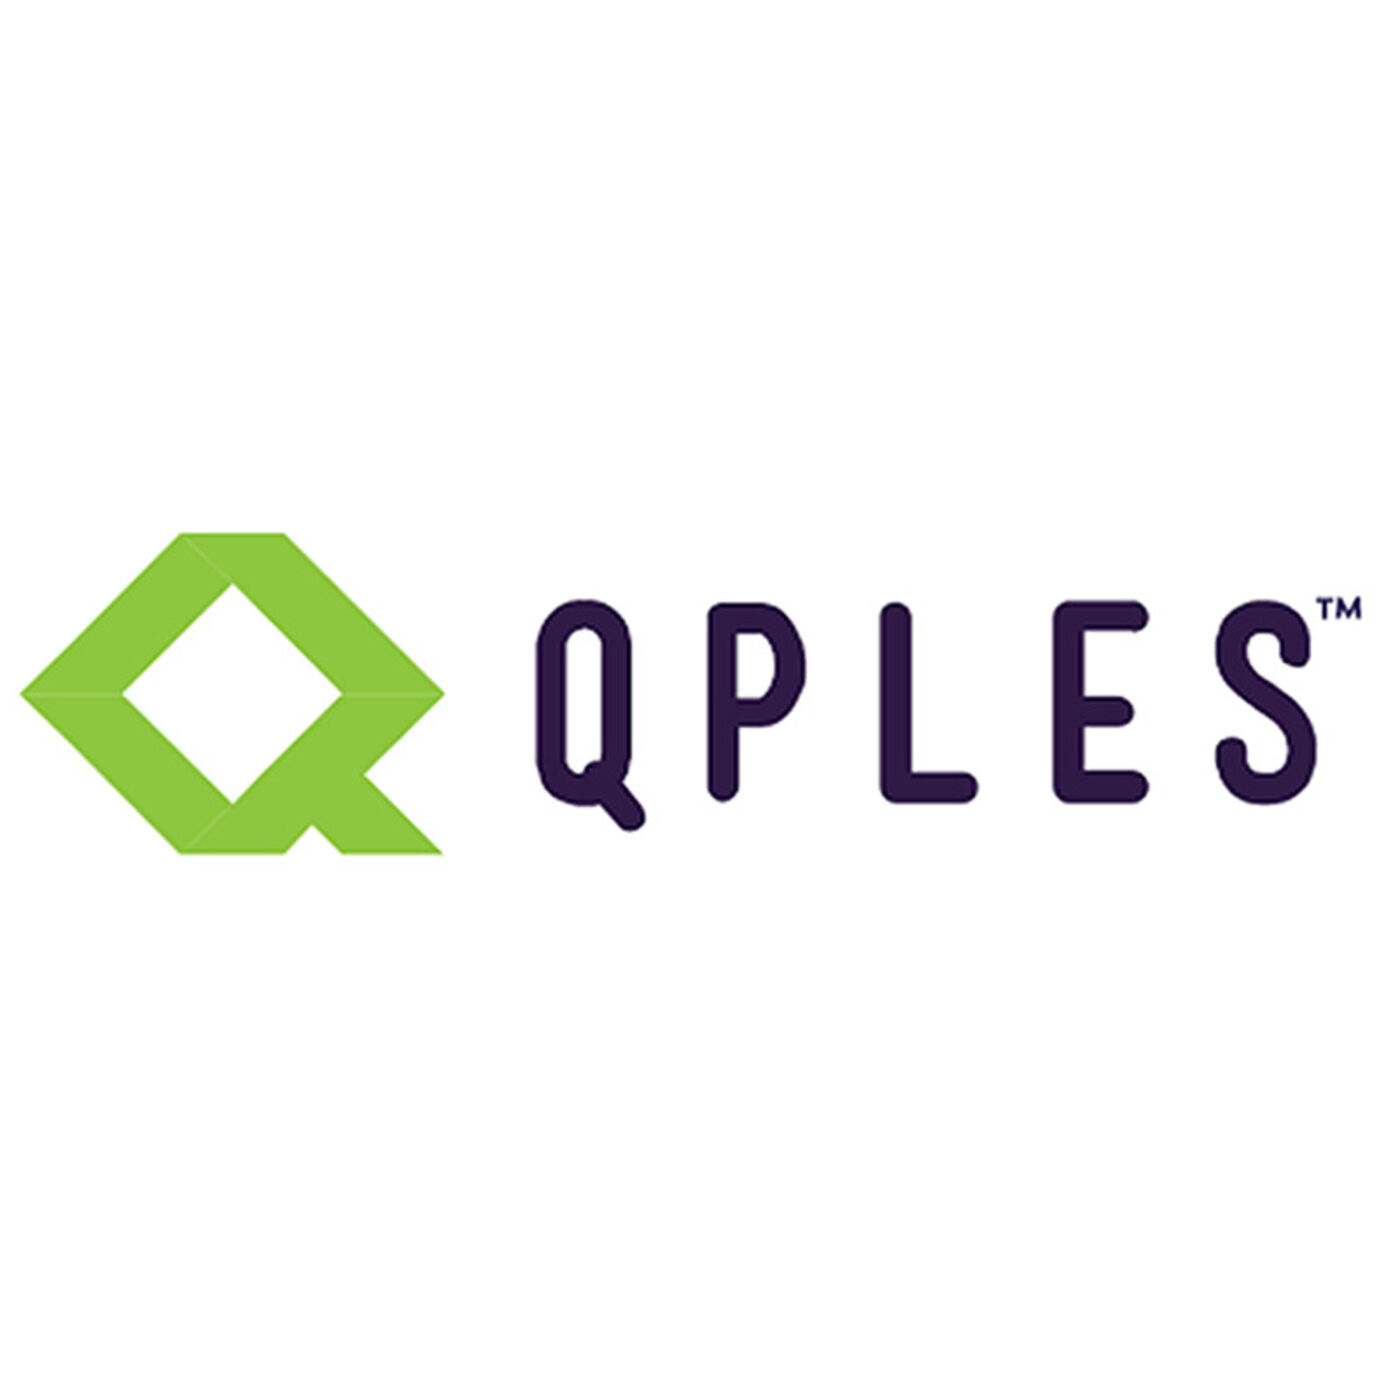 Episode 18: The Qples Story